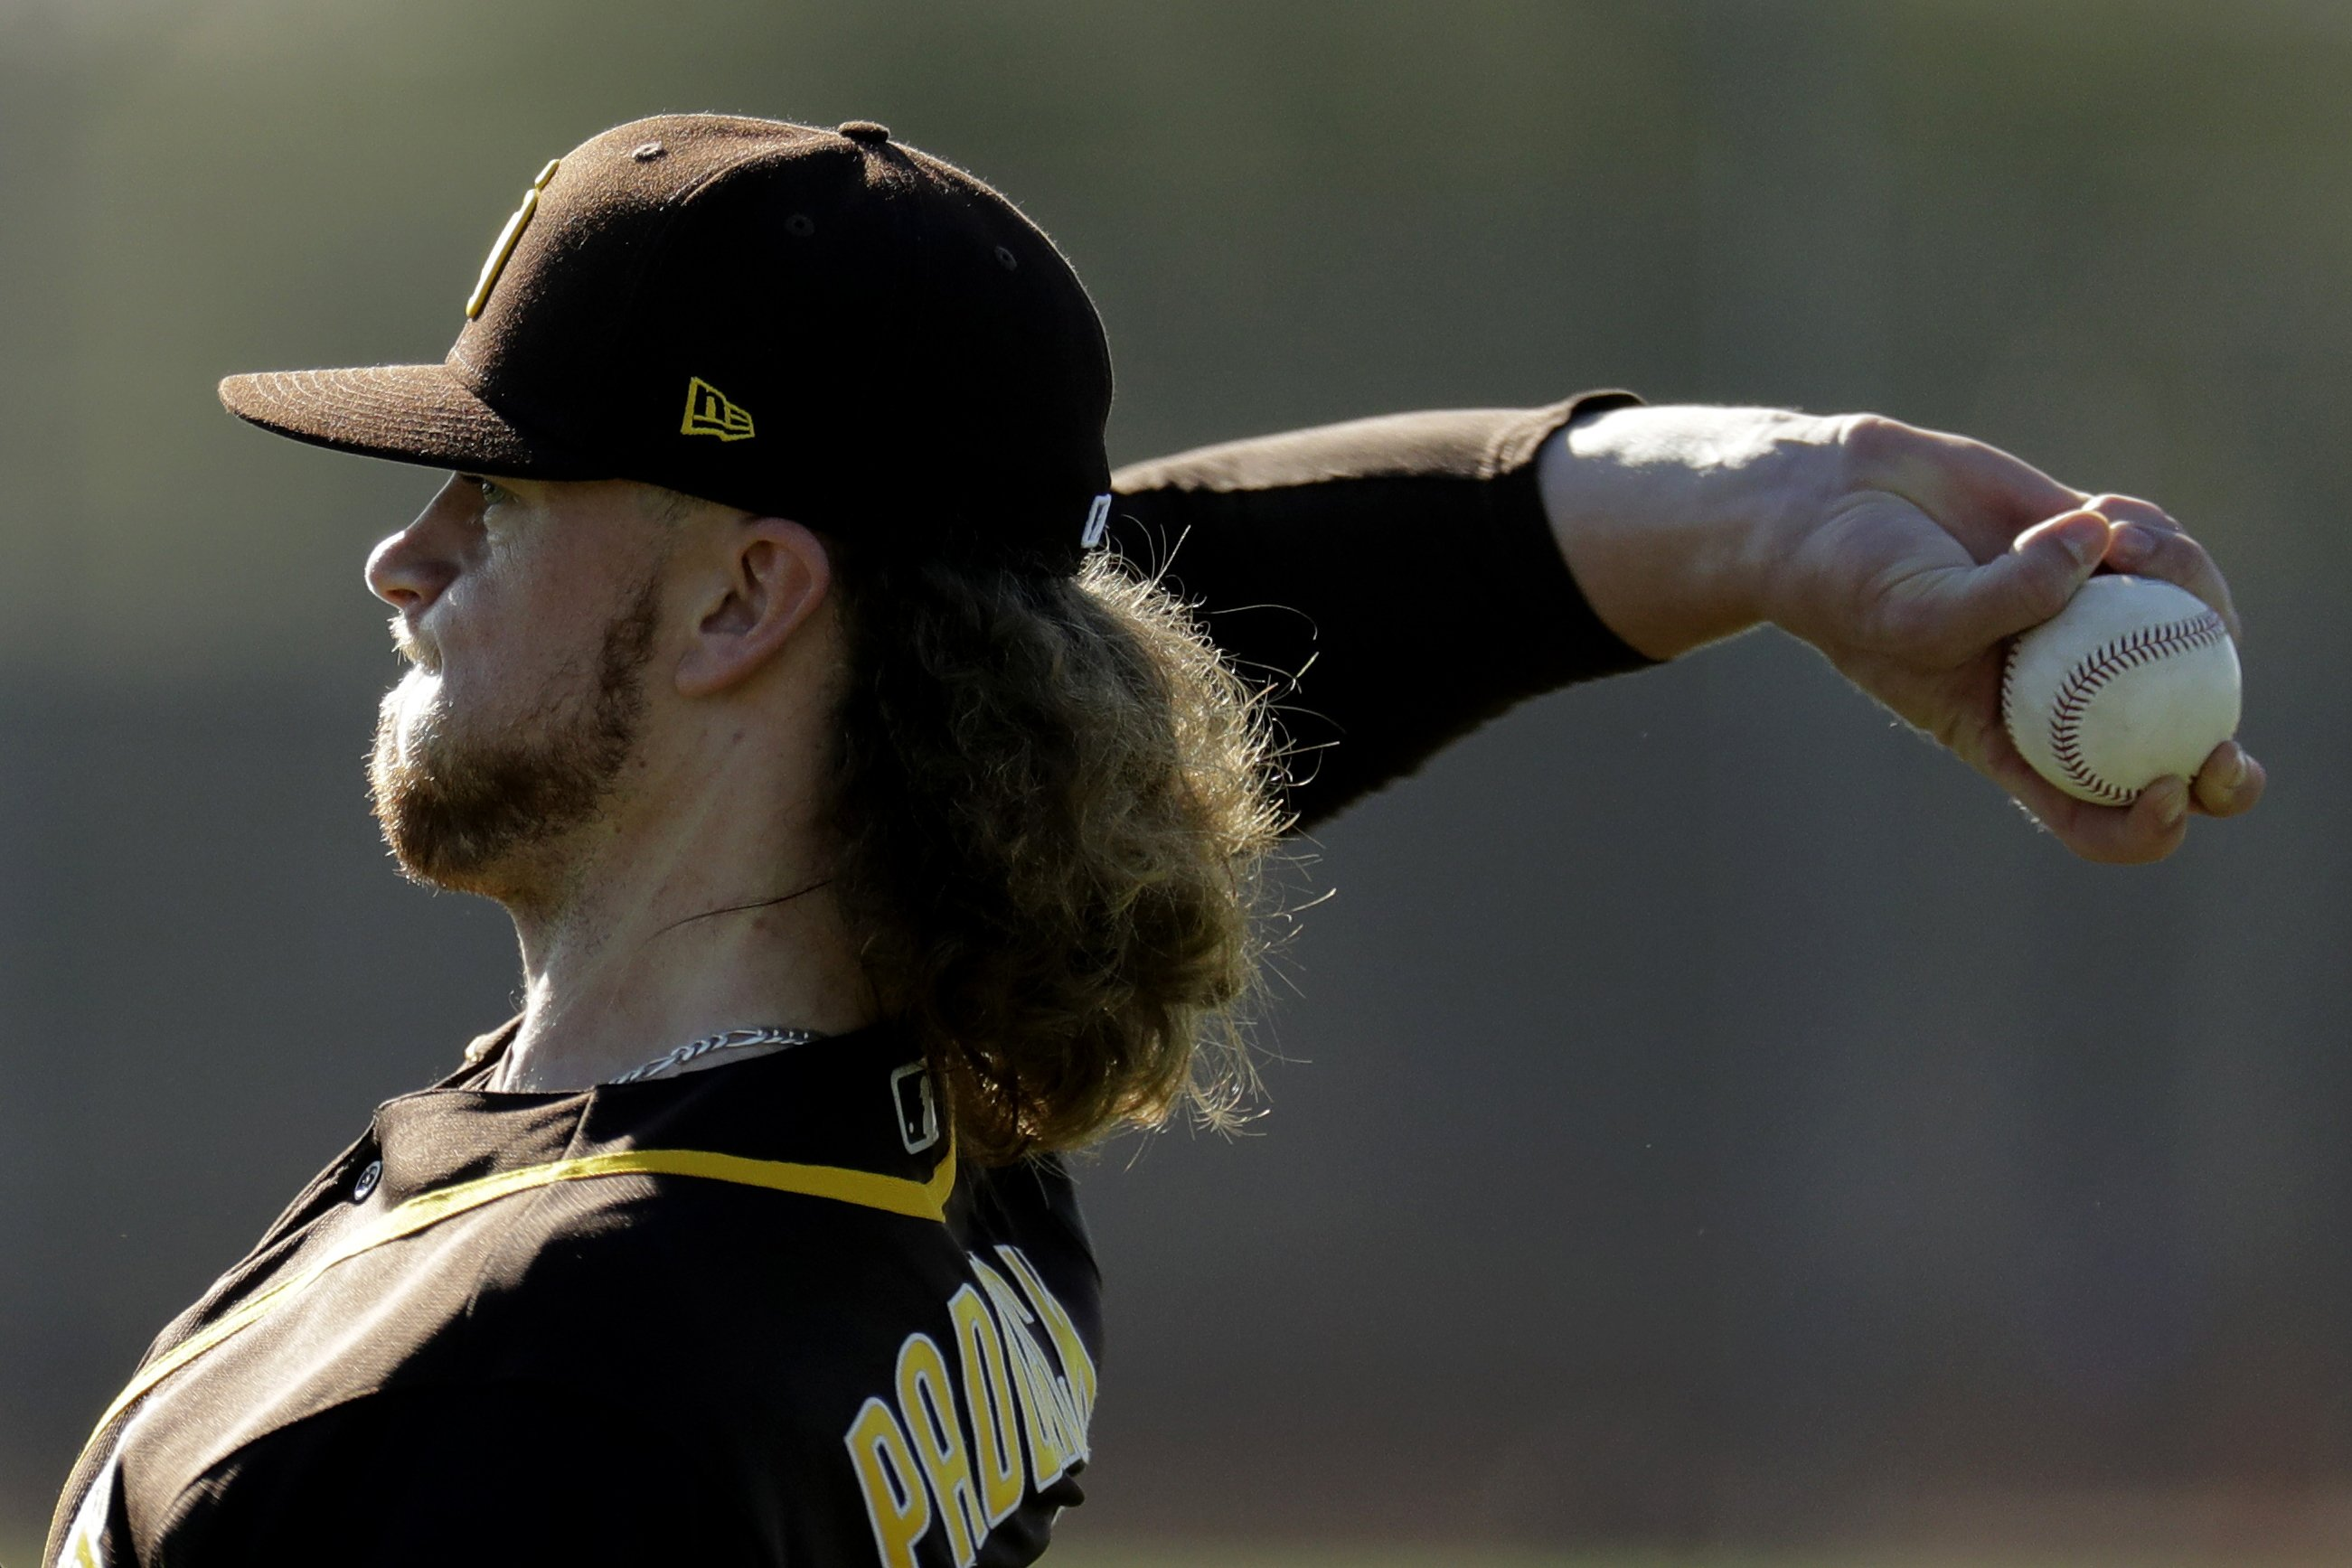 Padres pitcher Paddack looks forward to showing off lion